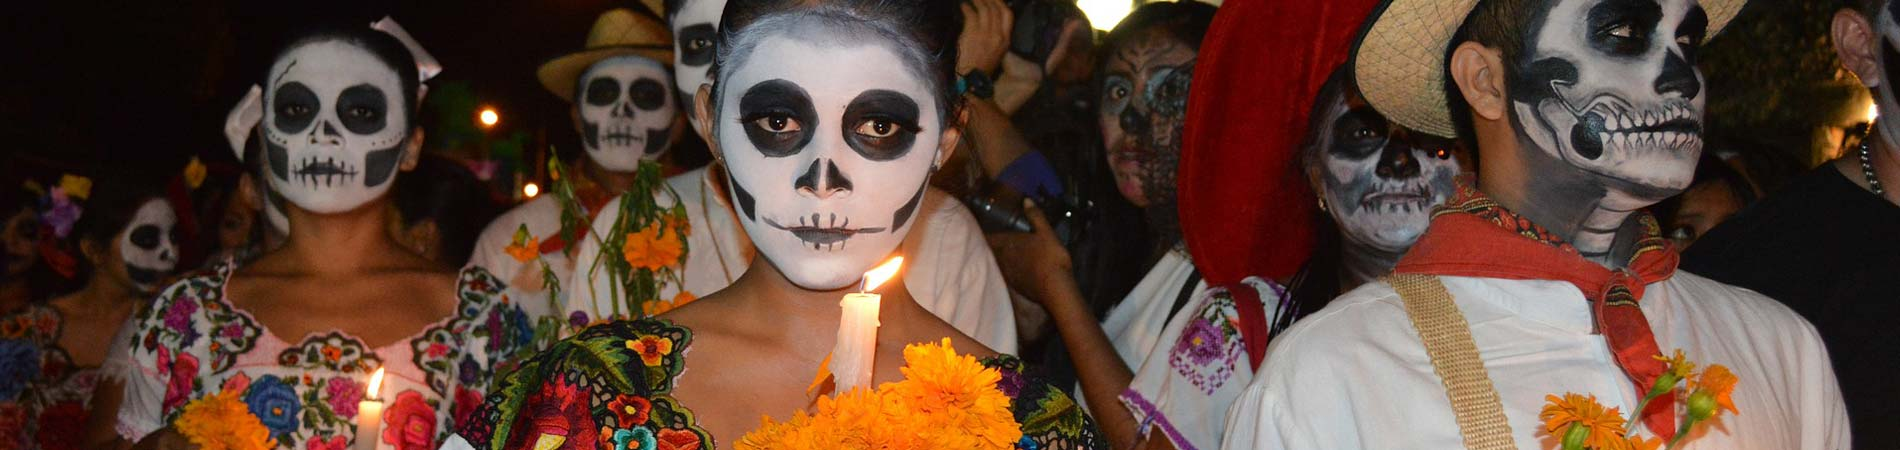 an overview of the mexican celebrations dia de los muertos the day of the dead We're devoting the entire week to the celebration of día de los muertos  día de los muertos: calabaza en tacha  day of the dead, is an important mexican.